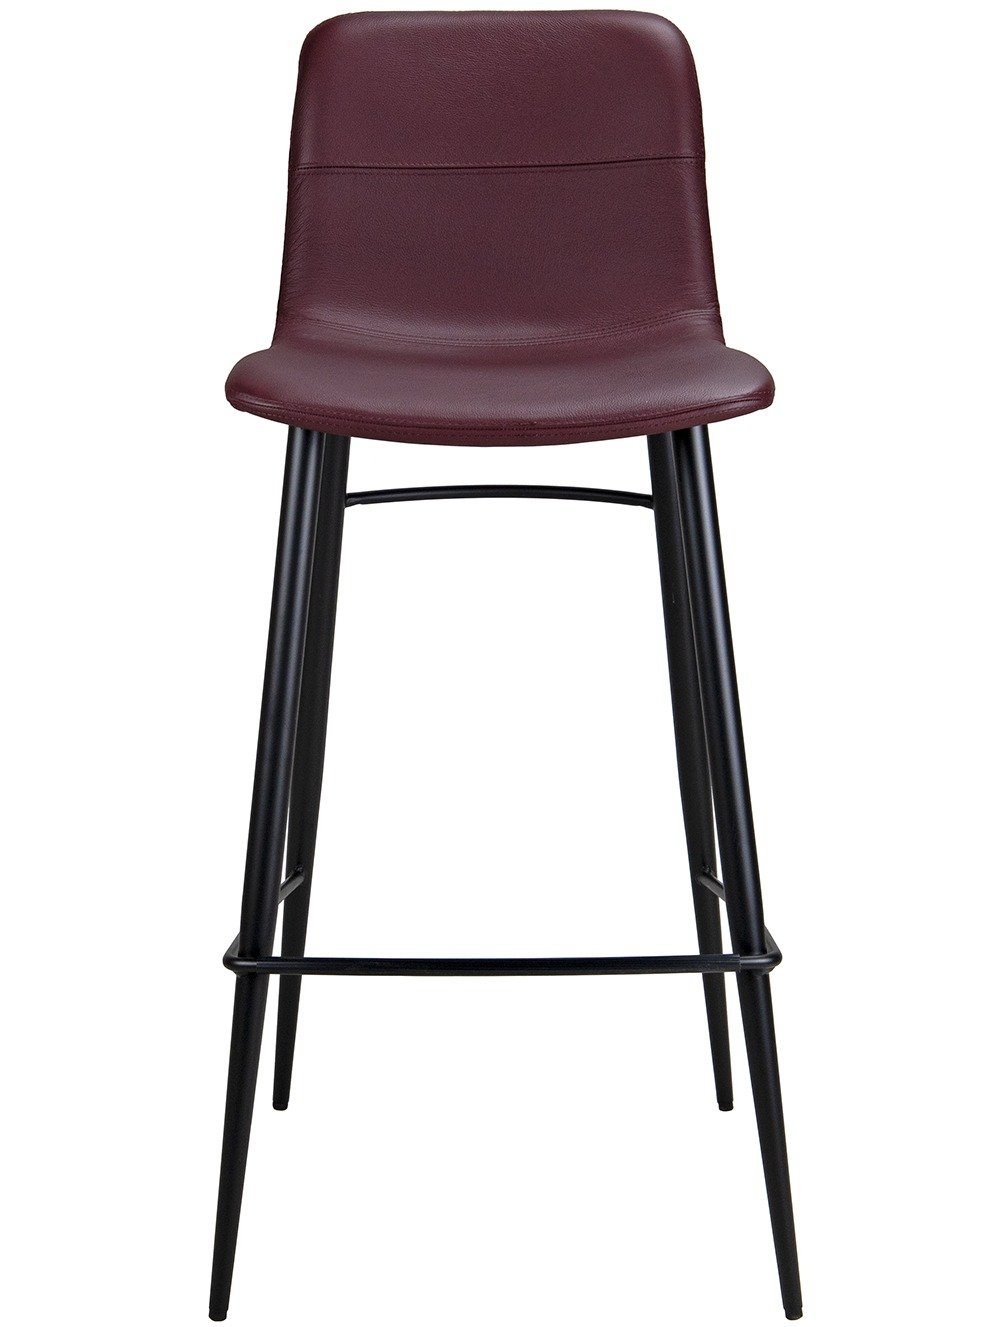 Emma High Stool from the front